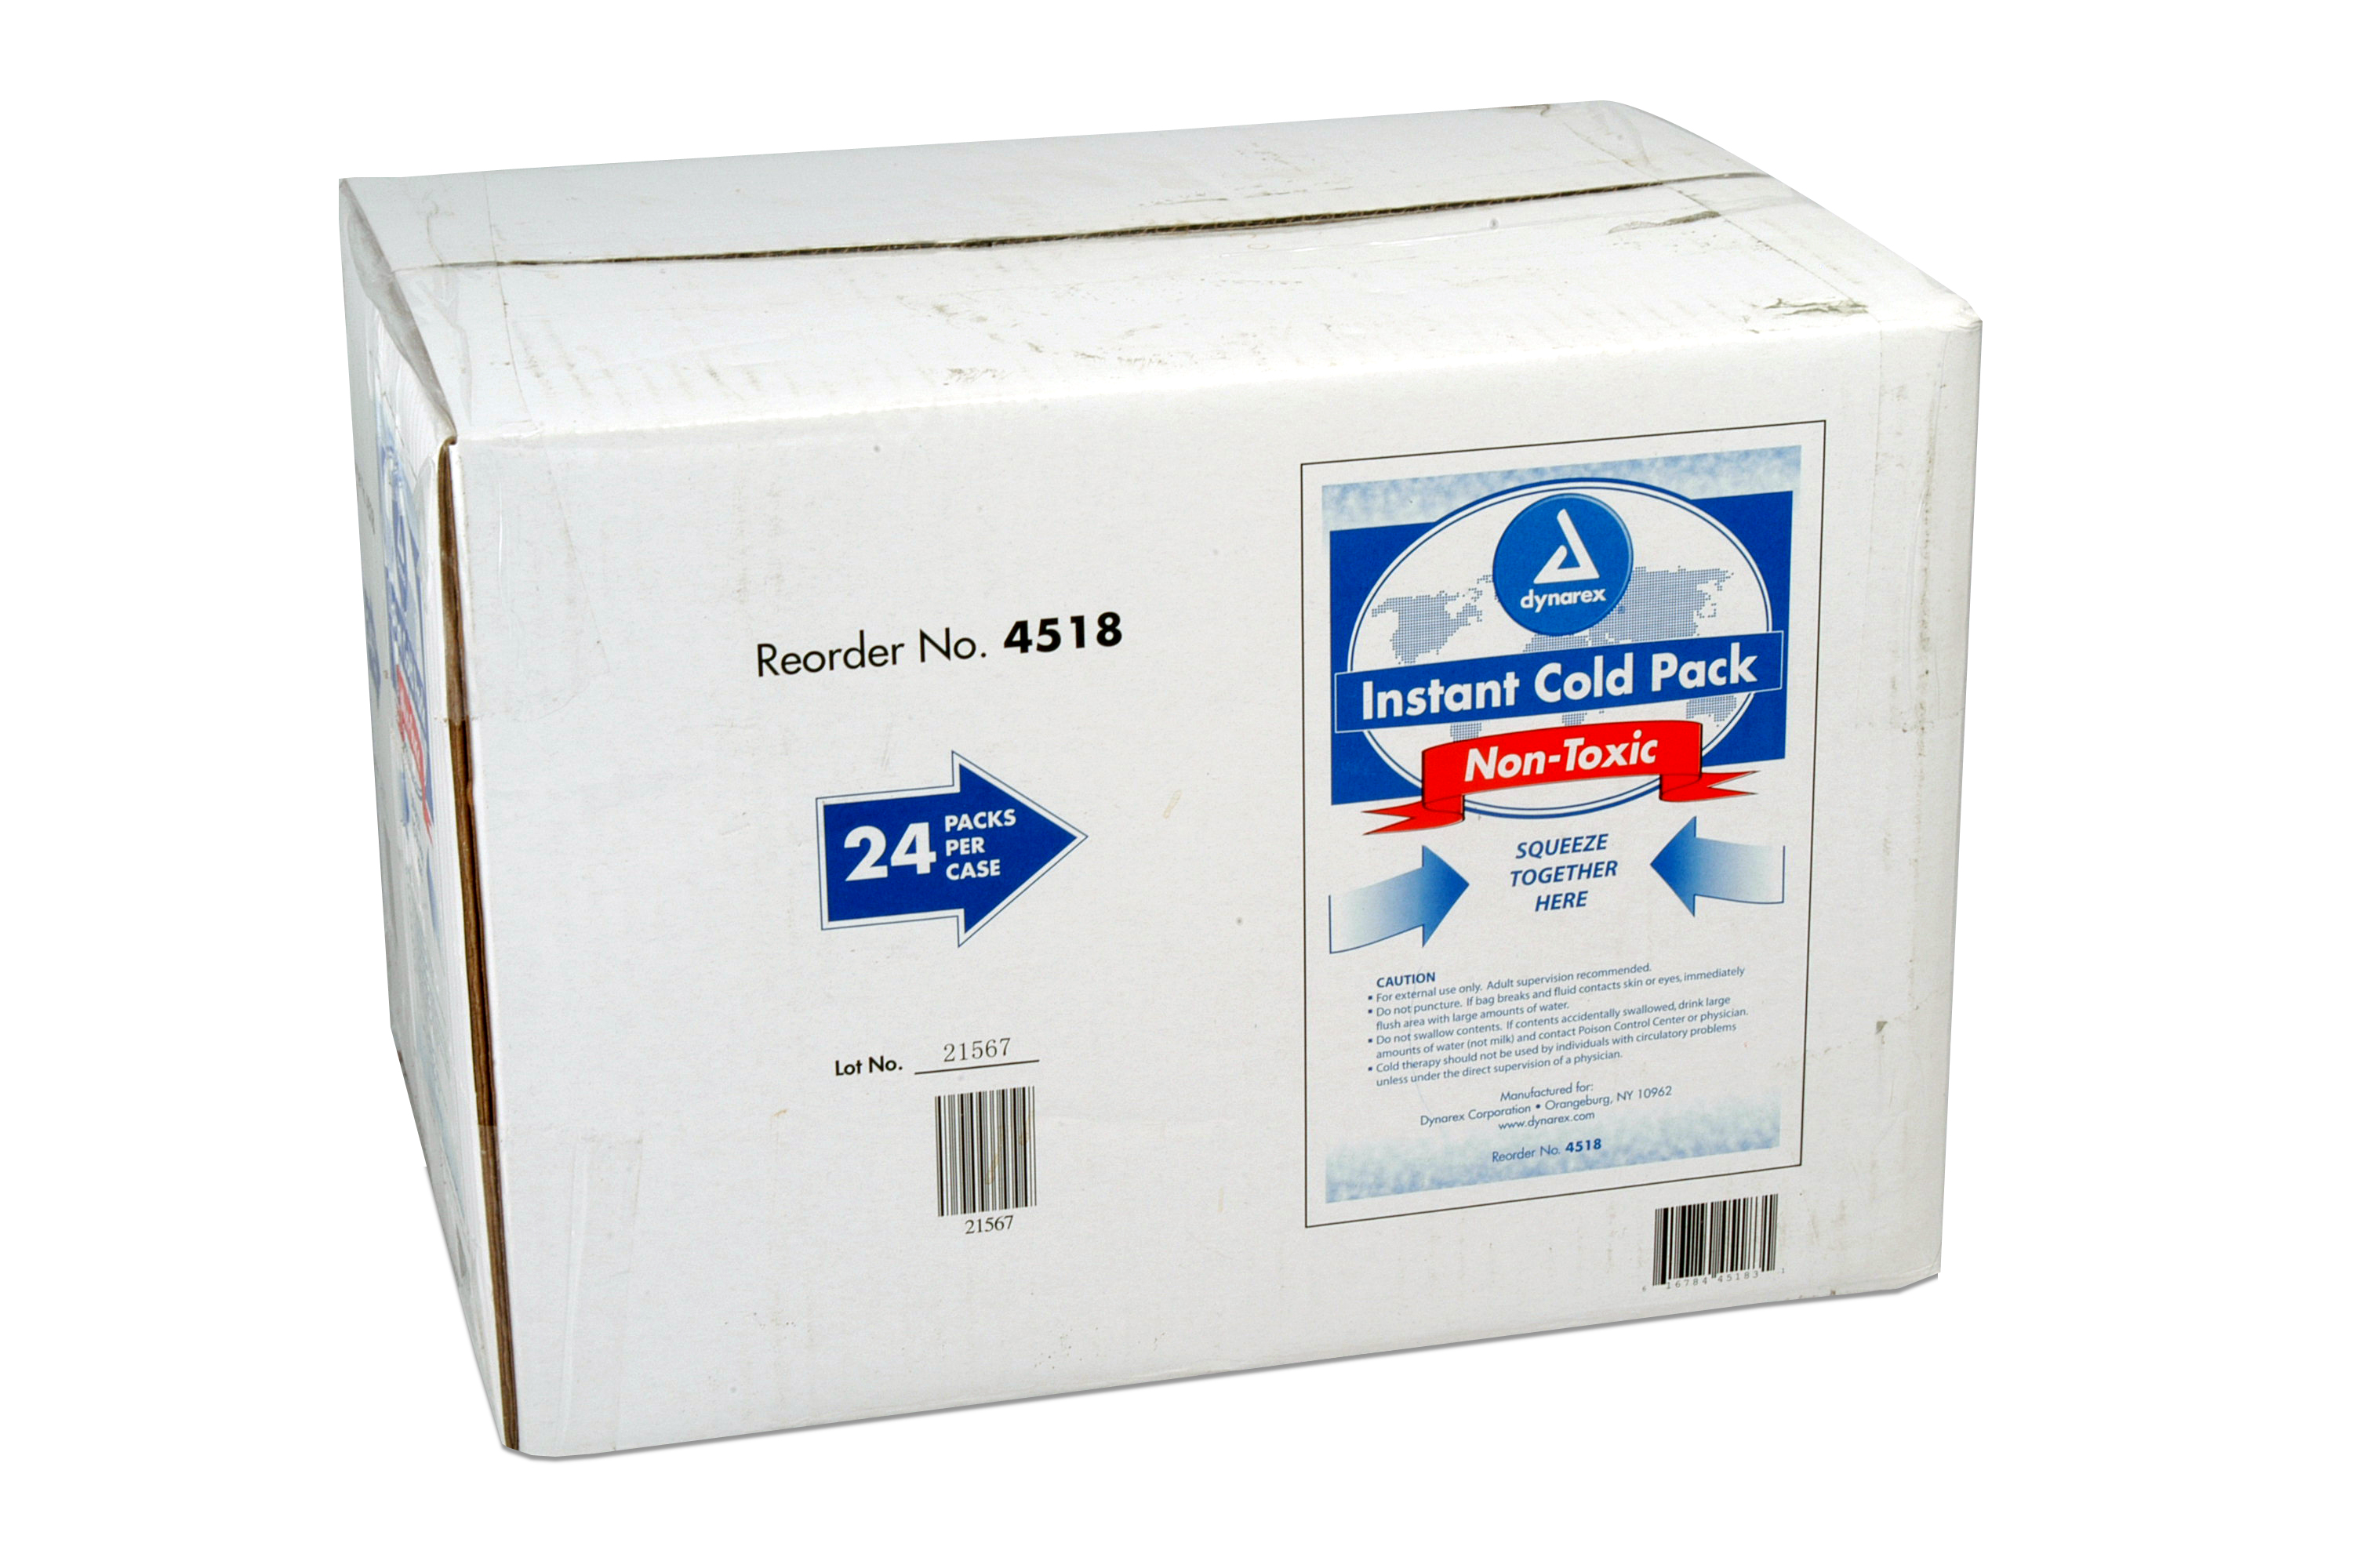 Instant Ice Pack 5x9 Non Toxic: Case of 24 image